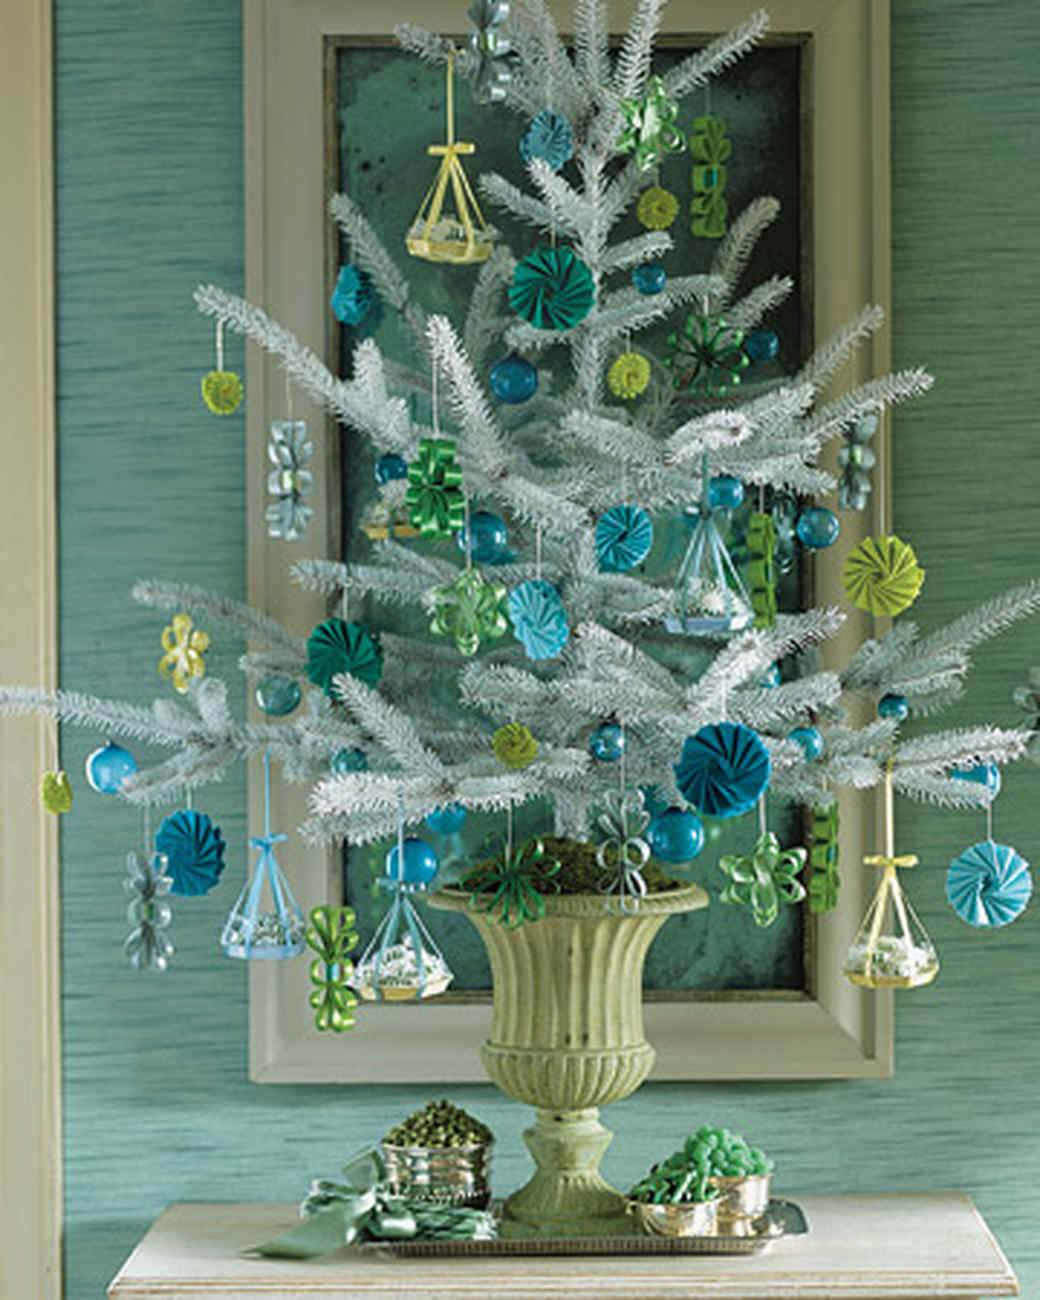 28 creative christmas tree decorating ideas martha stewart - Turquoise Christmas Tree Decorations